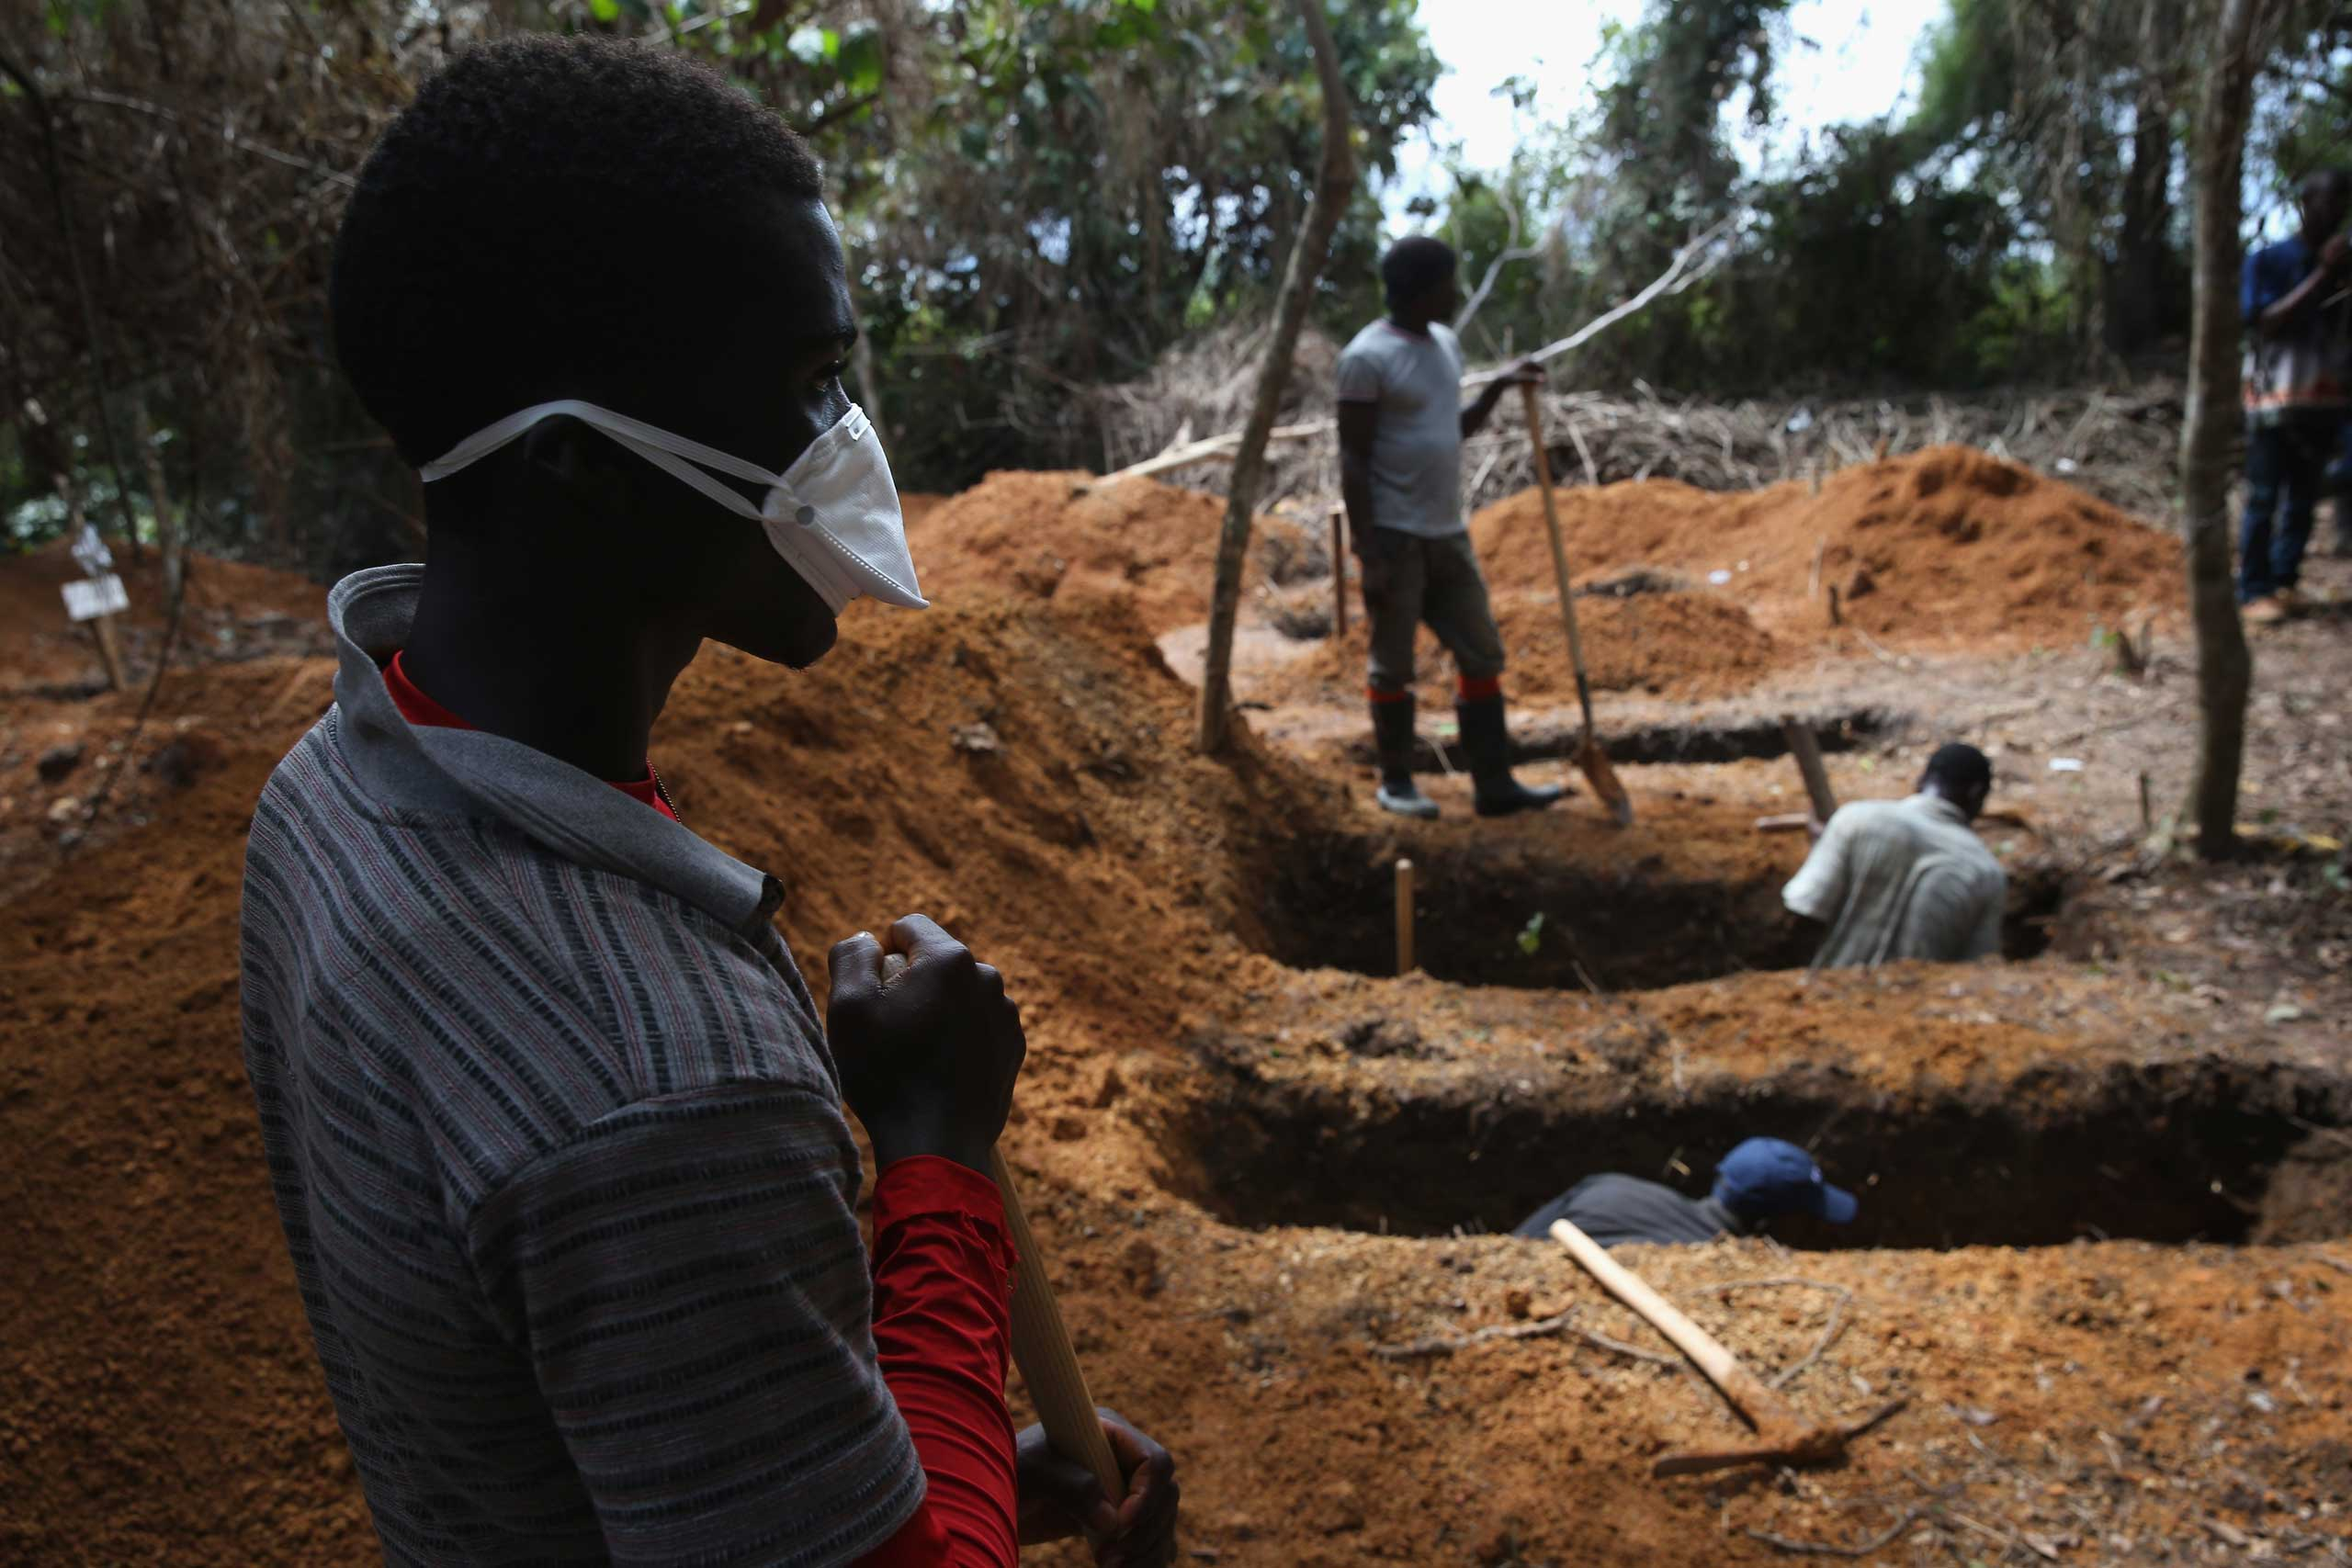 Grave diggers prepare for new Ebola victim outside an Ebola treatment center in Gbarnga, Liberia on Oct. 7, 2014.